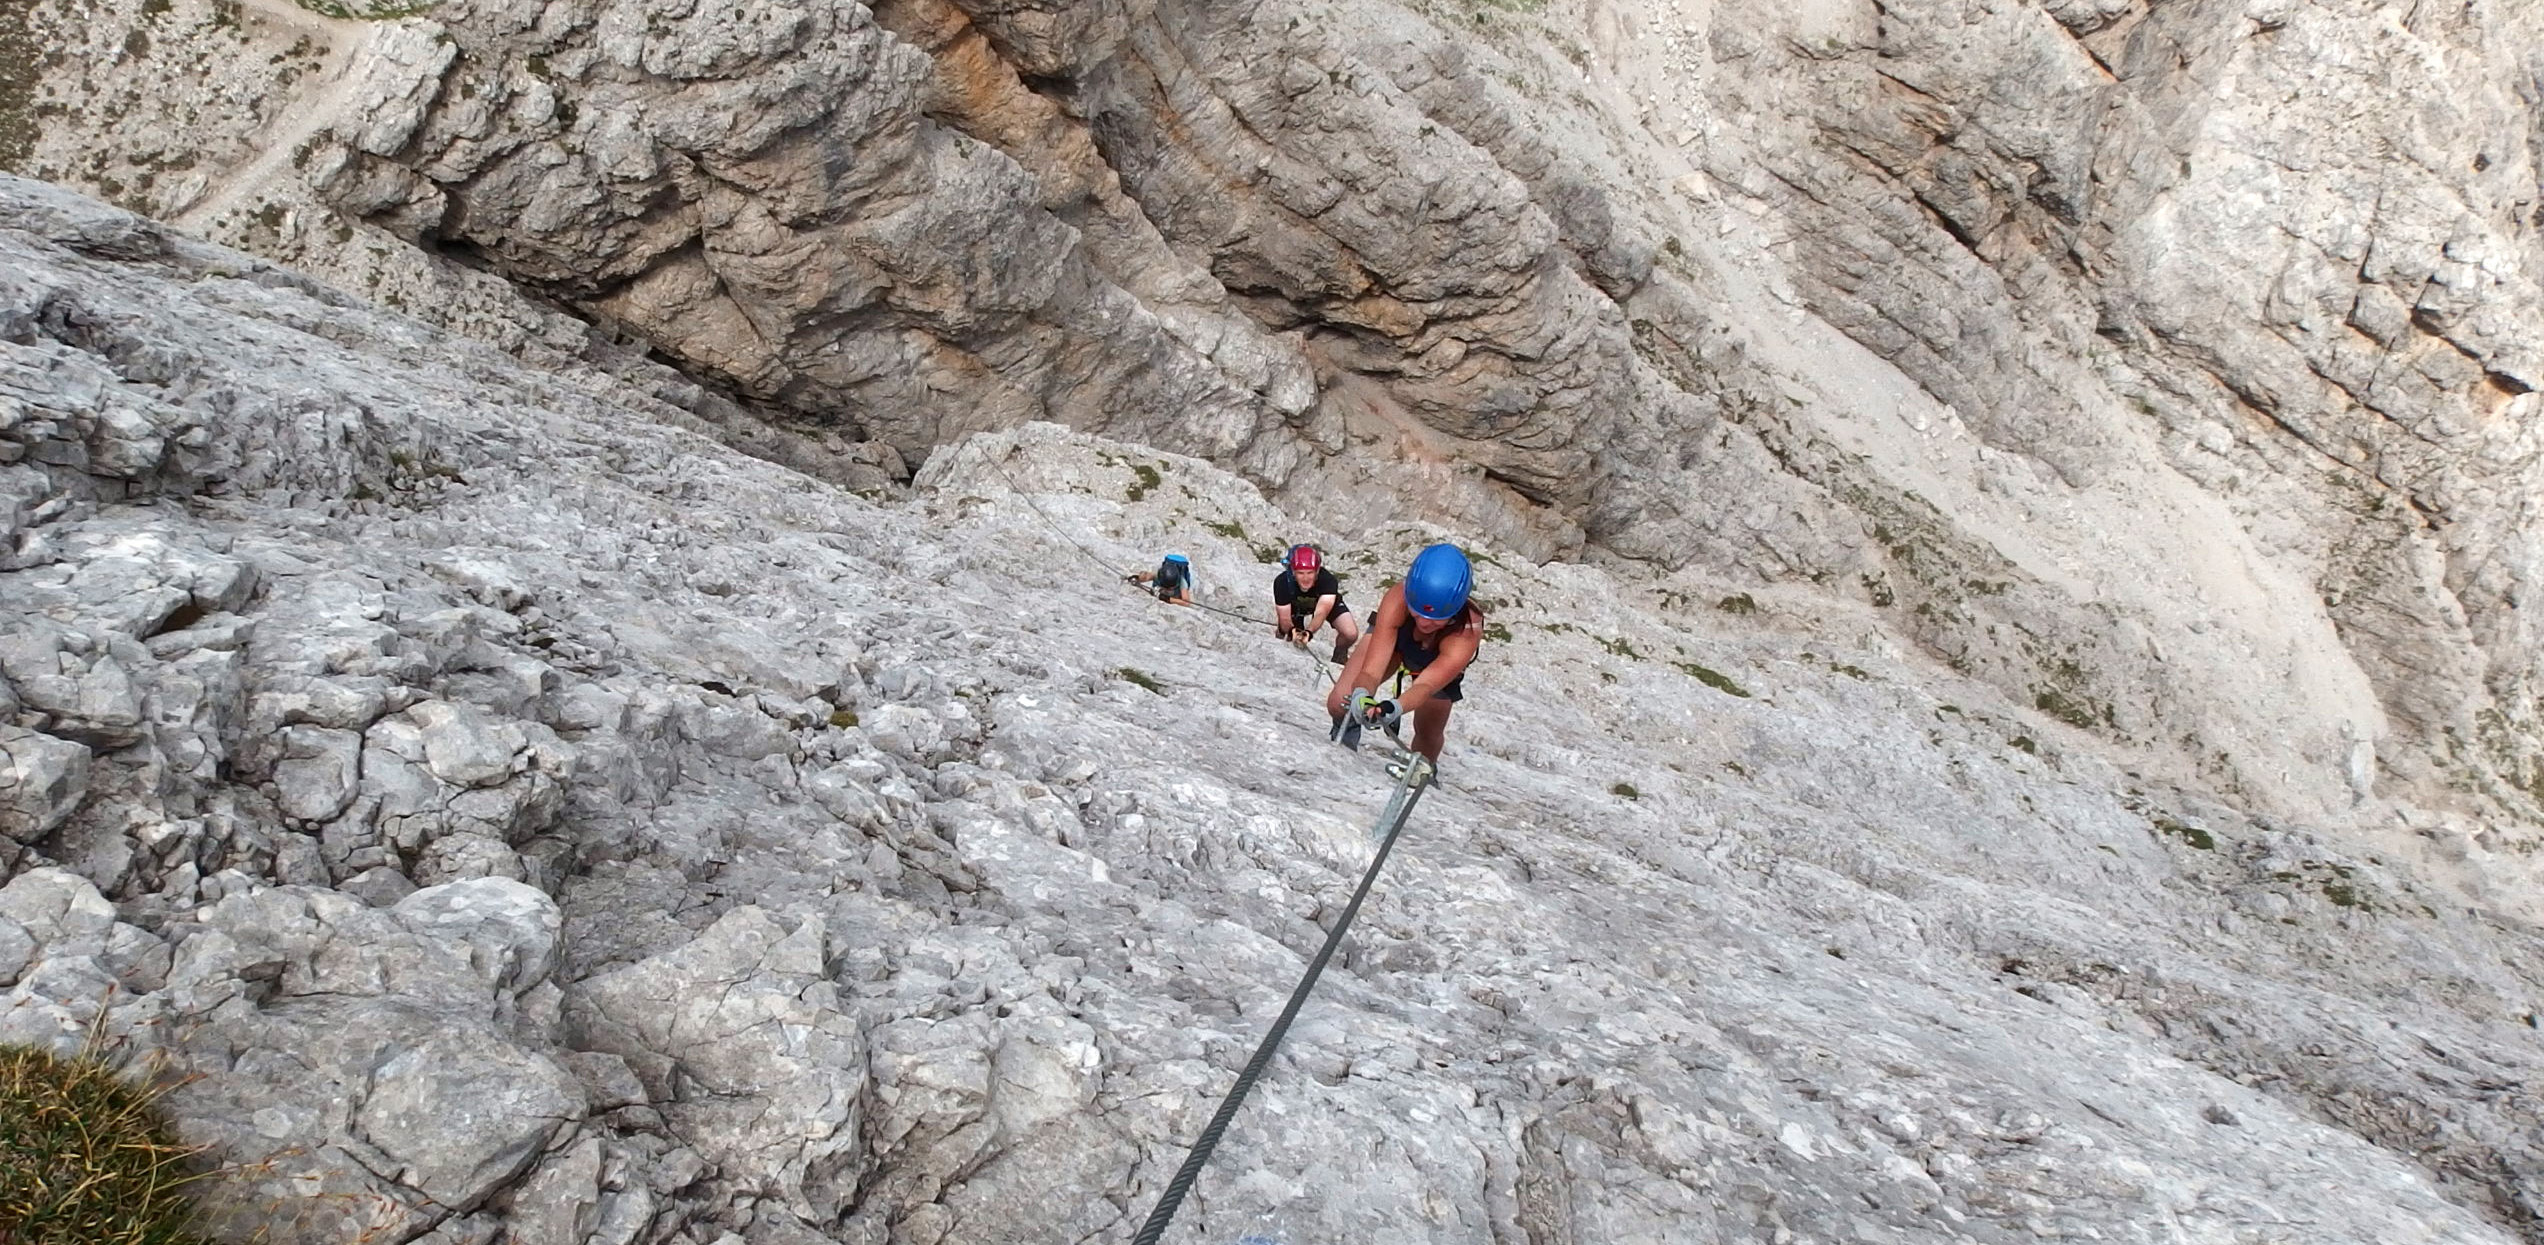 Via ferrata trails in Lienz Dolomites